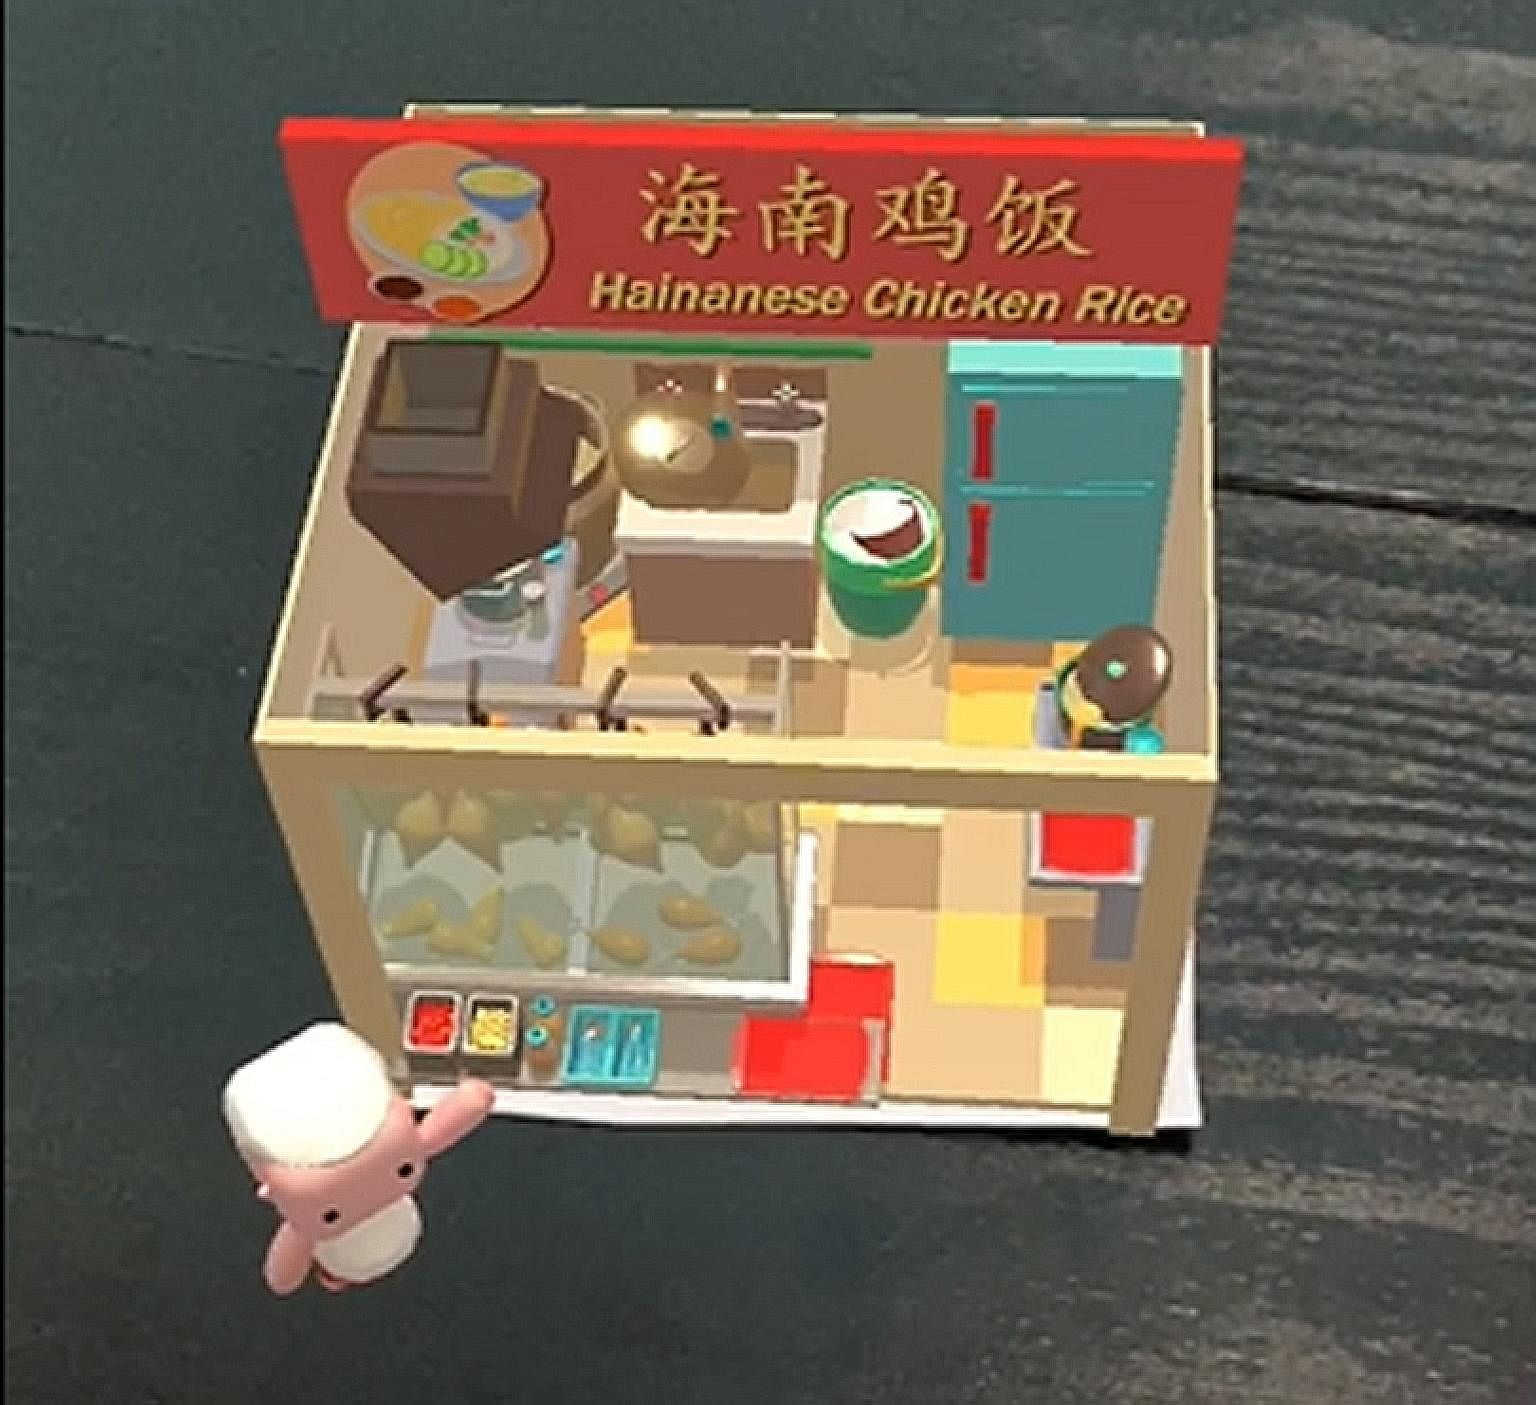 A screenshot of an augmented reality prototype animation of a hawker stall developed by the Singapore Tourism Board to showcase the possibilities of using the technology in the tourism sector.